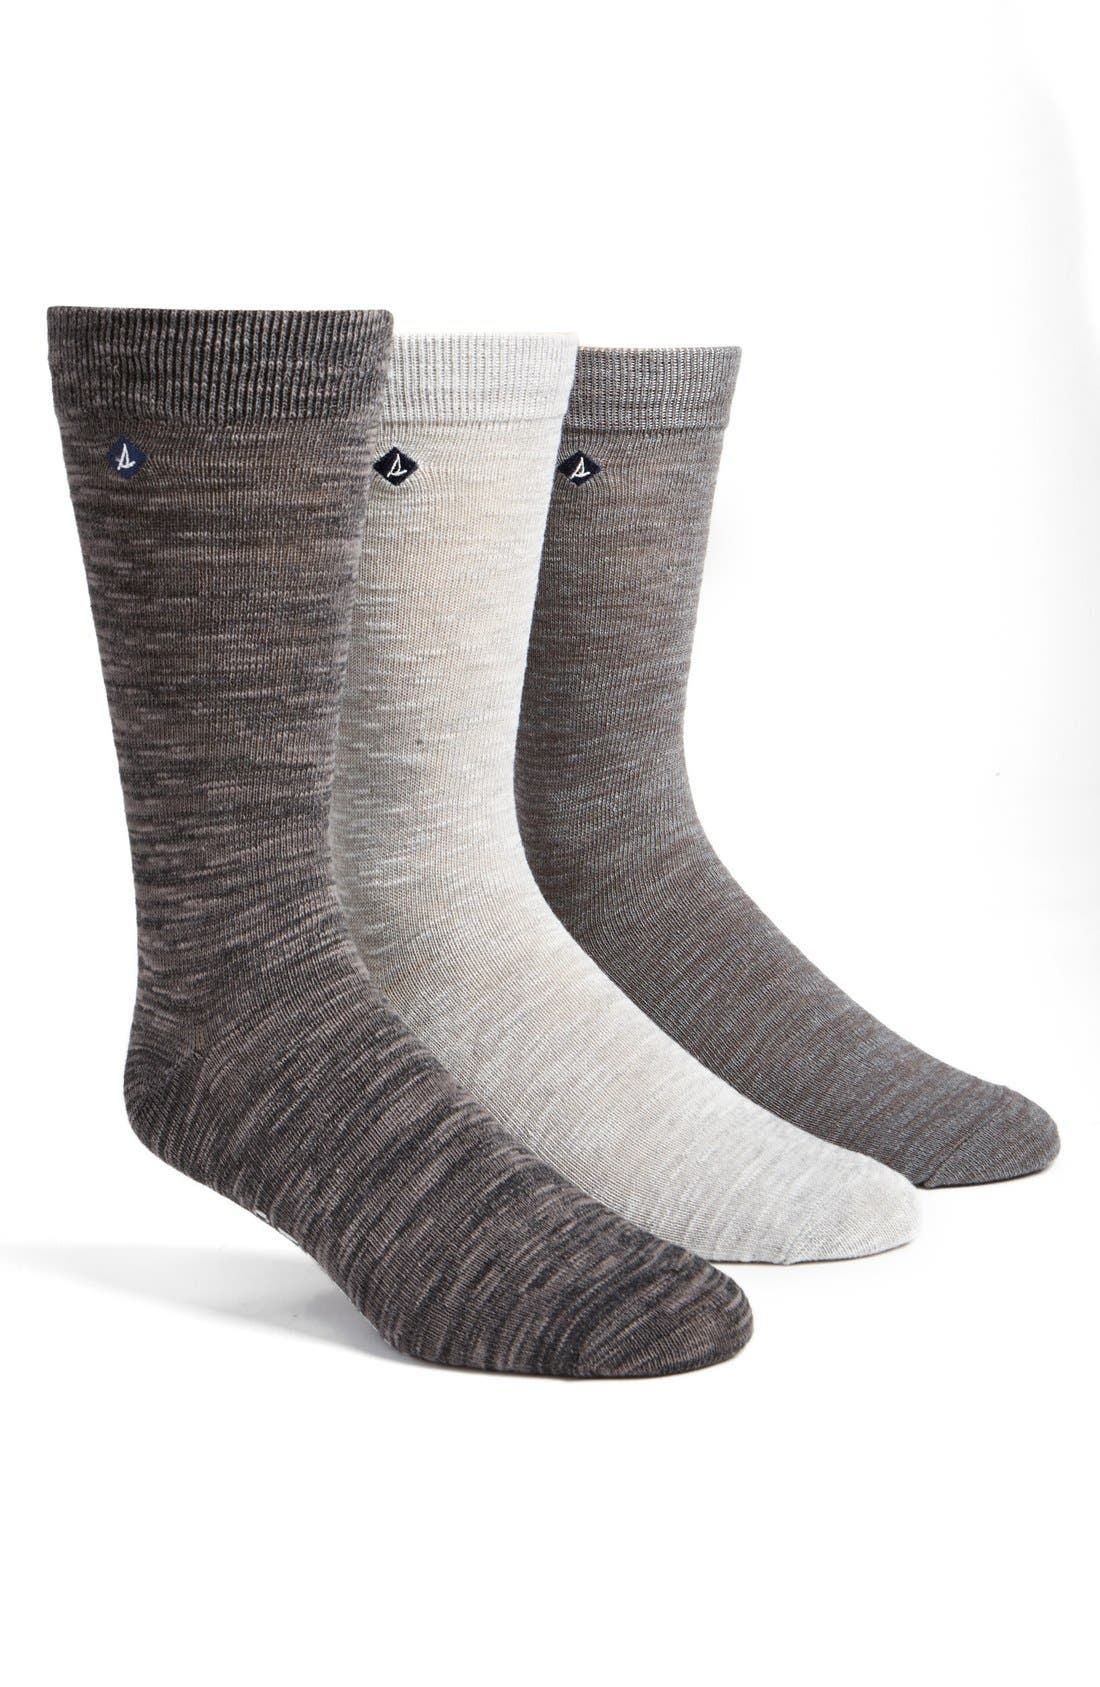 Main Image - Sperry Cotton Blend Socks (3-Pack)